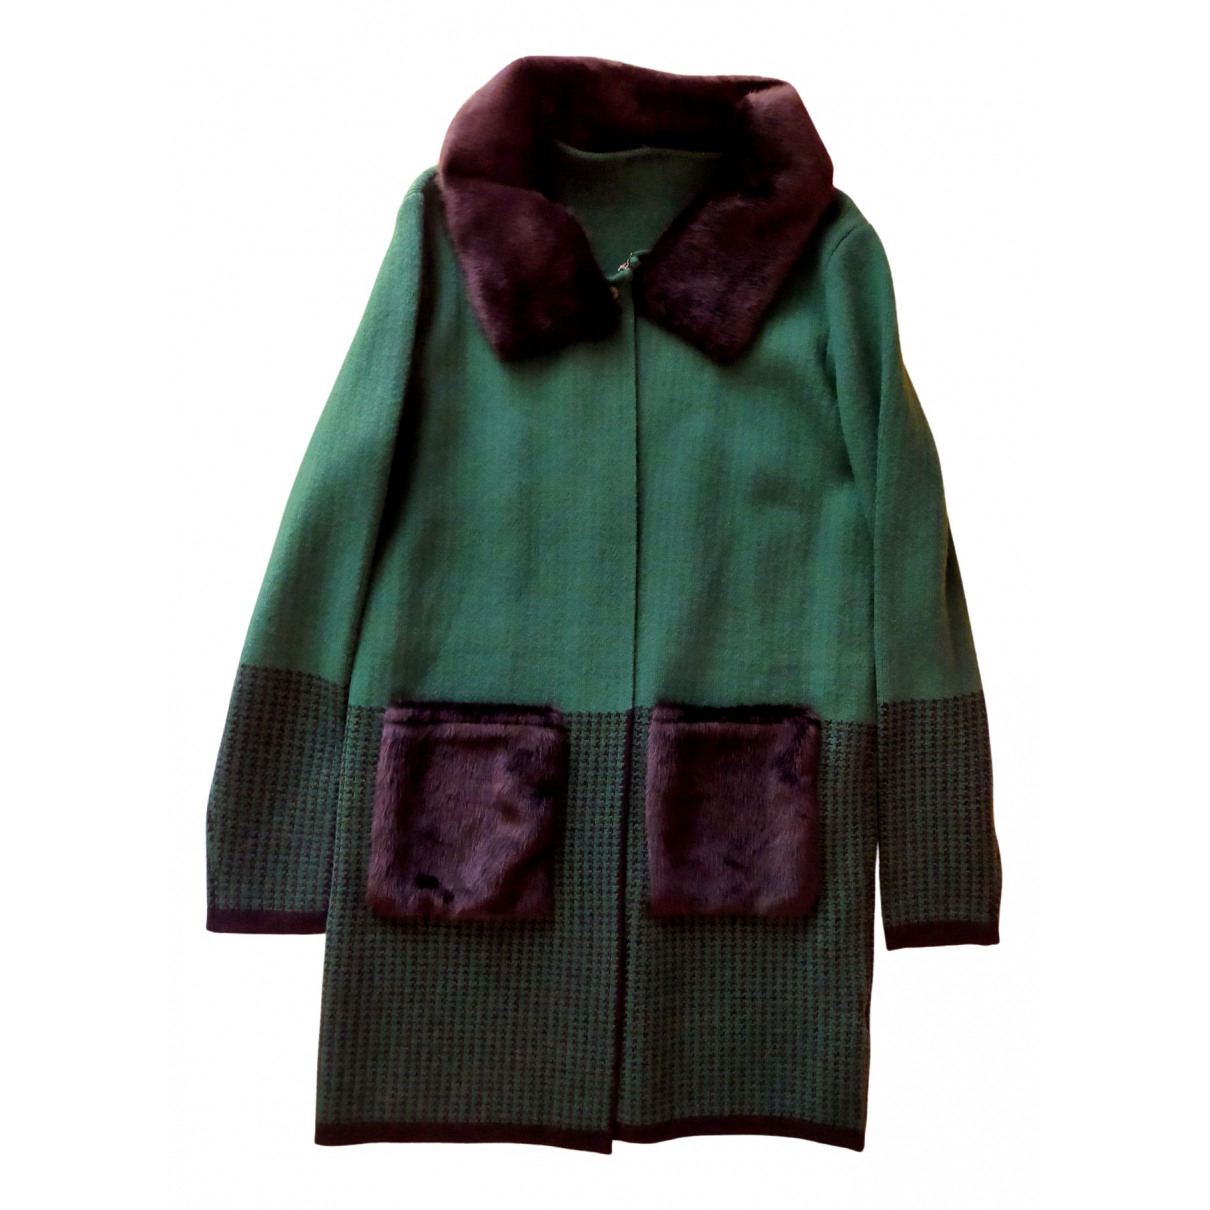 Hedoné N Green coat for Women M International